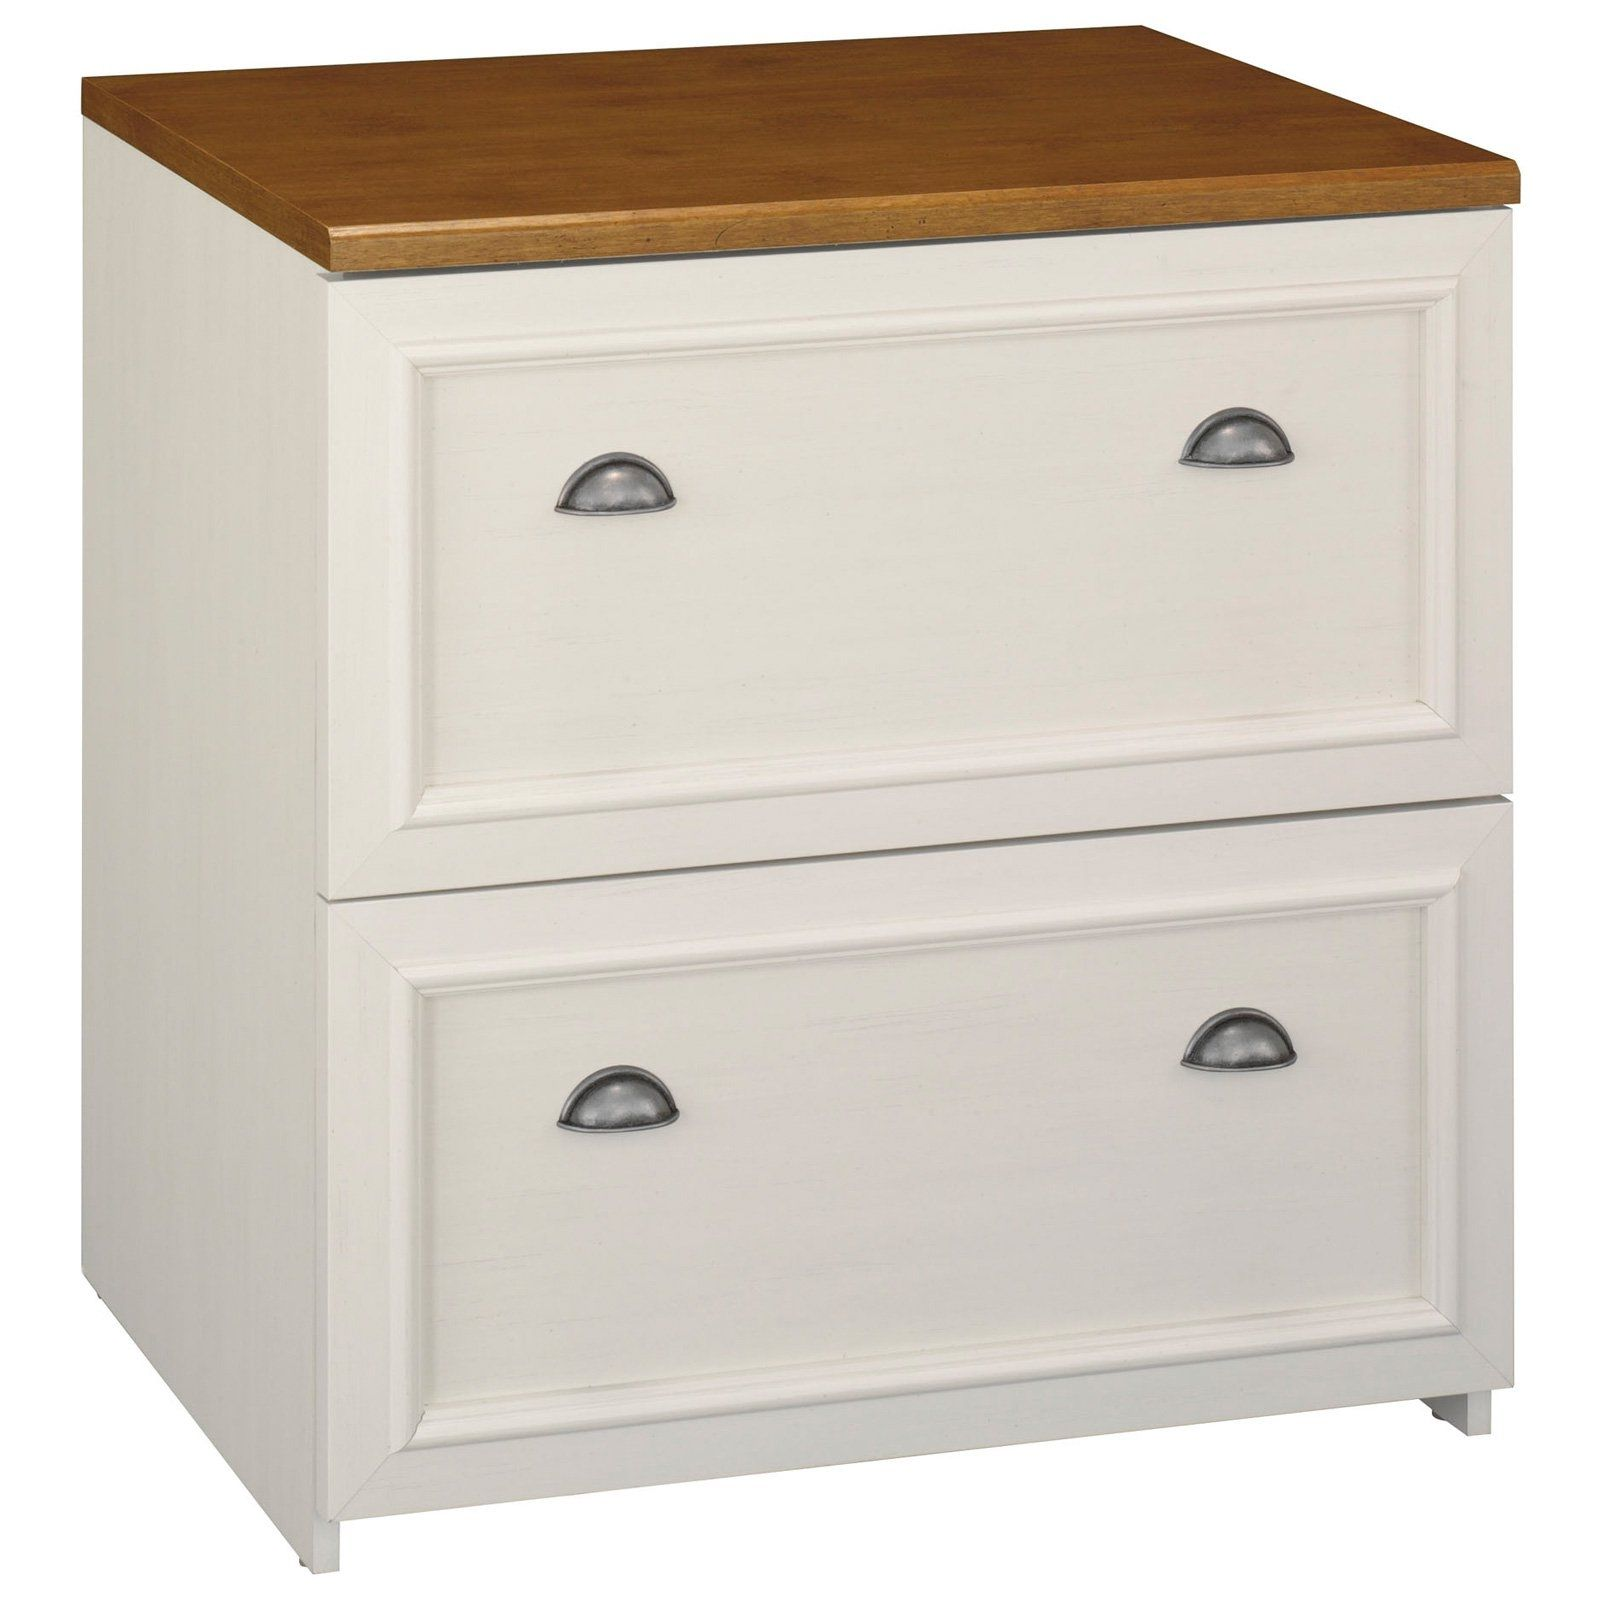 Superbe White Lateral File Cabinet Metal